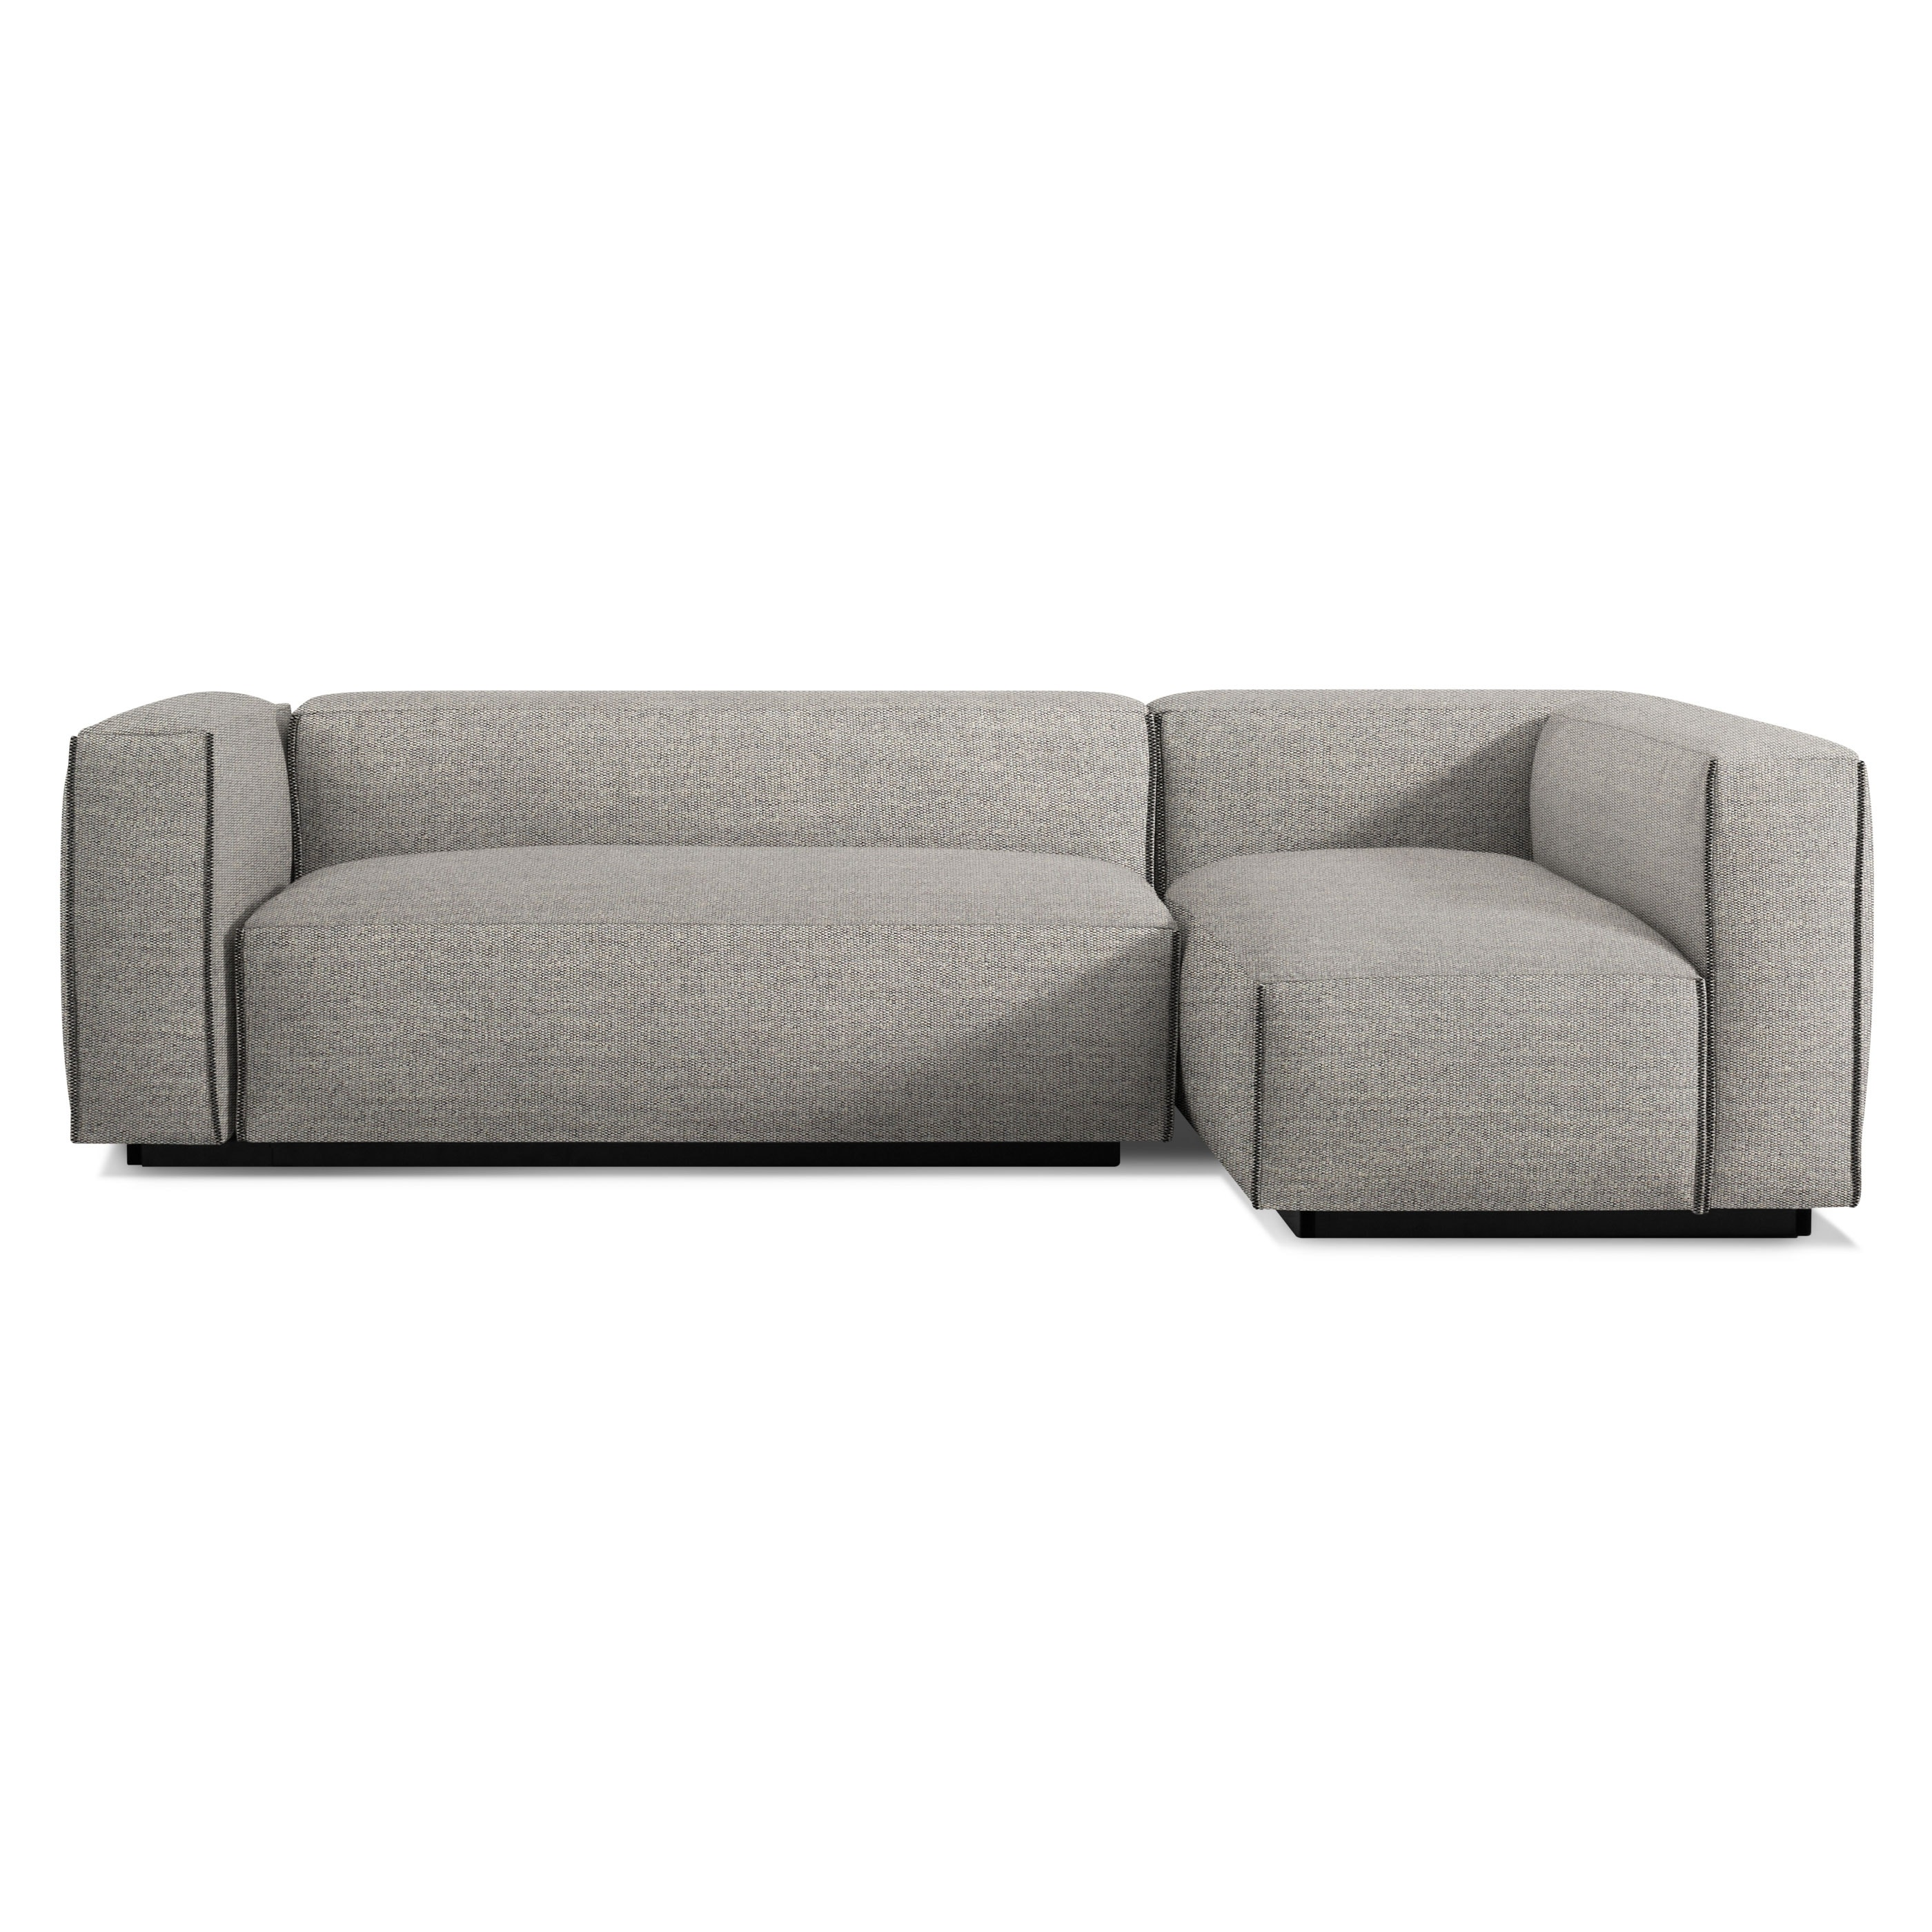 Lovely Previous Image Cleon Small Sectional Sofa   Tait Charcoal ...